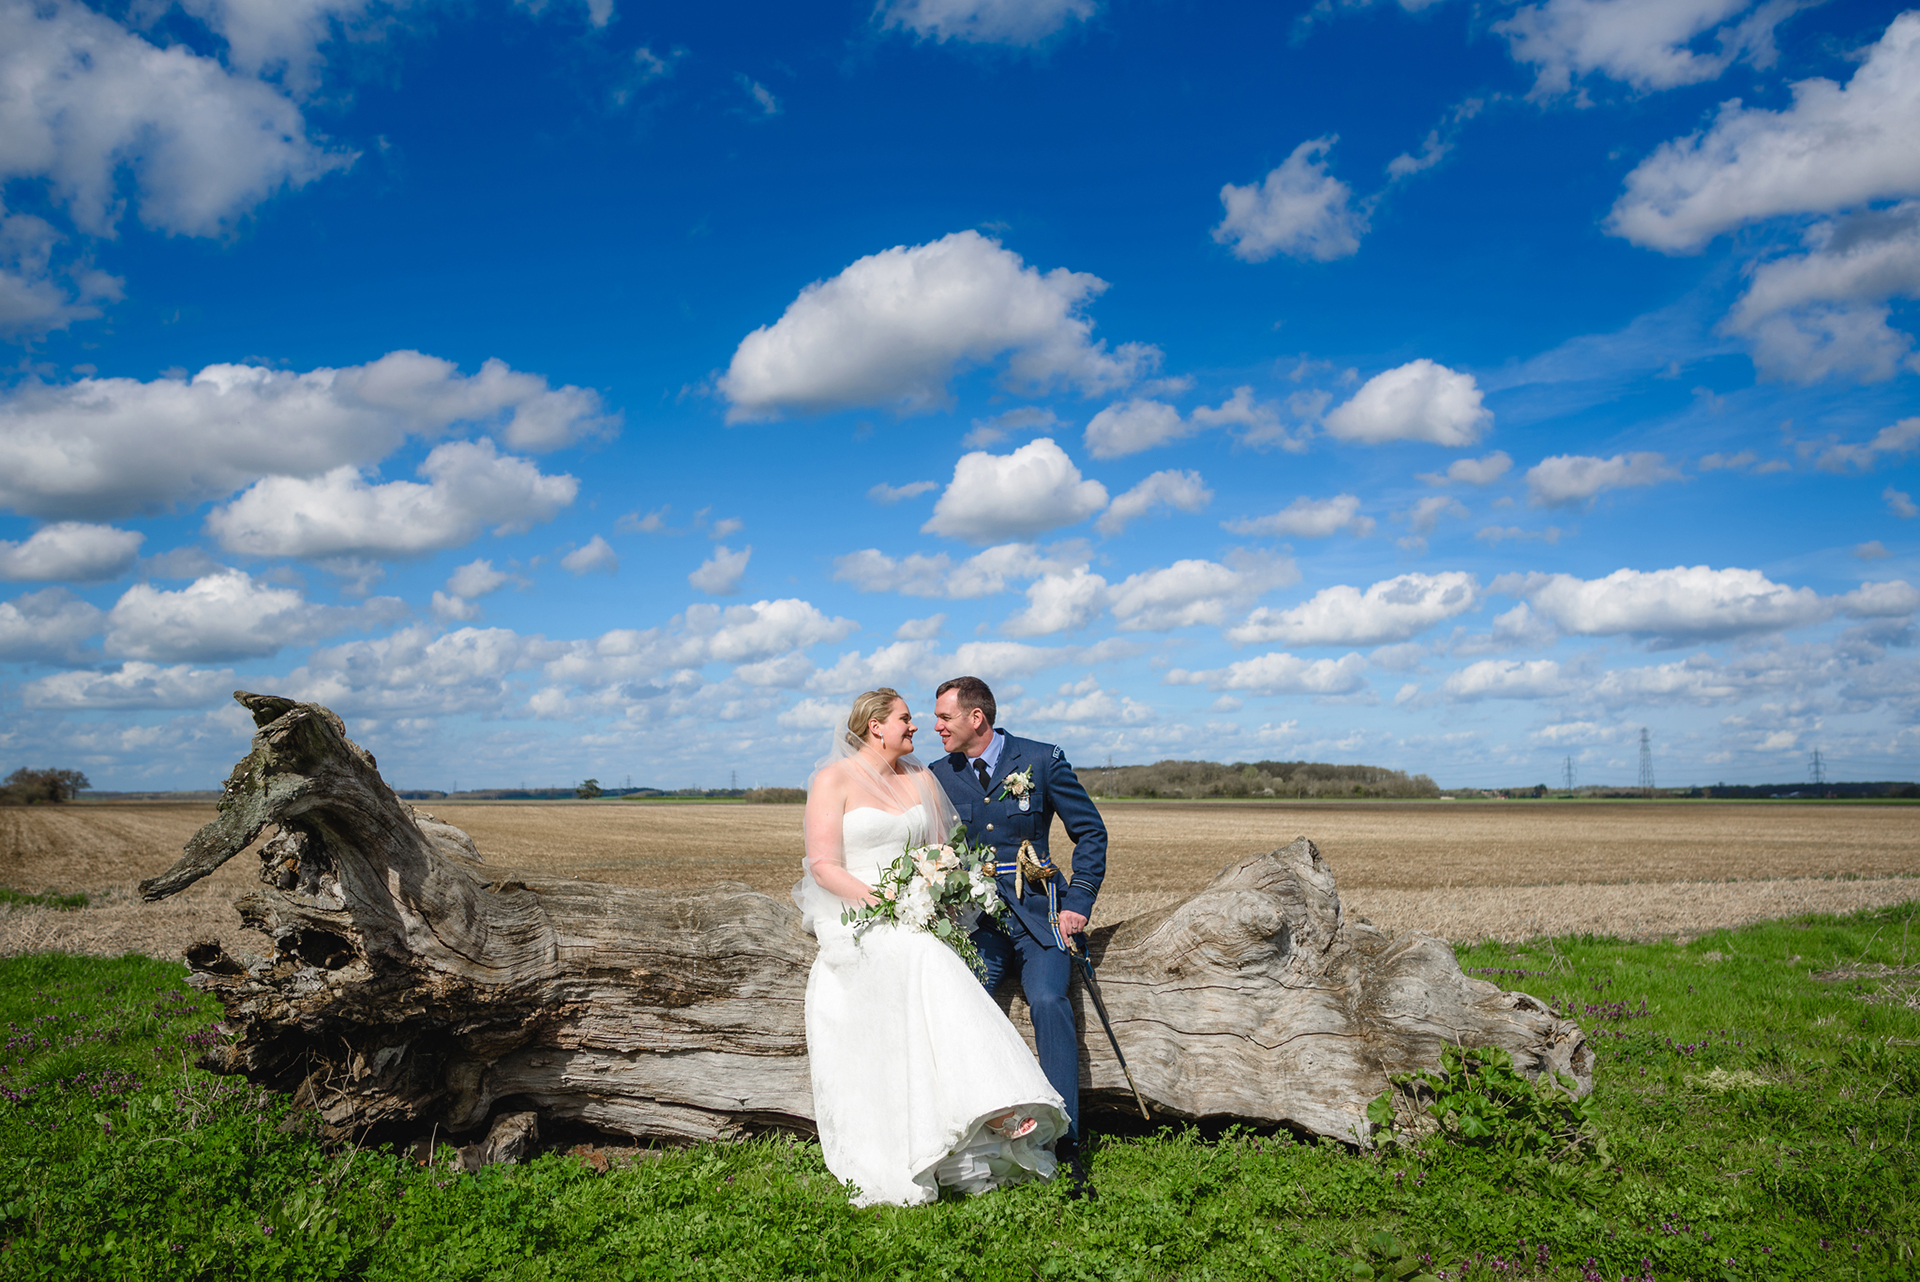 Laura and Nick take a moment out of their wedding day to sit on a tree stump and enjoy the countryside surroundings